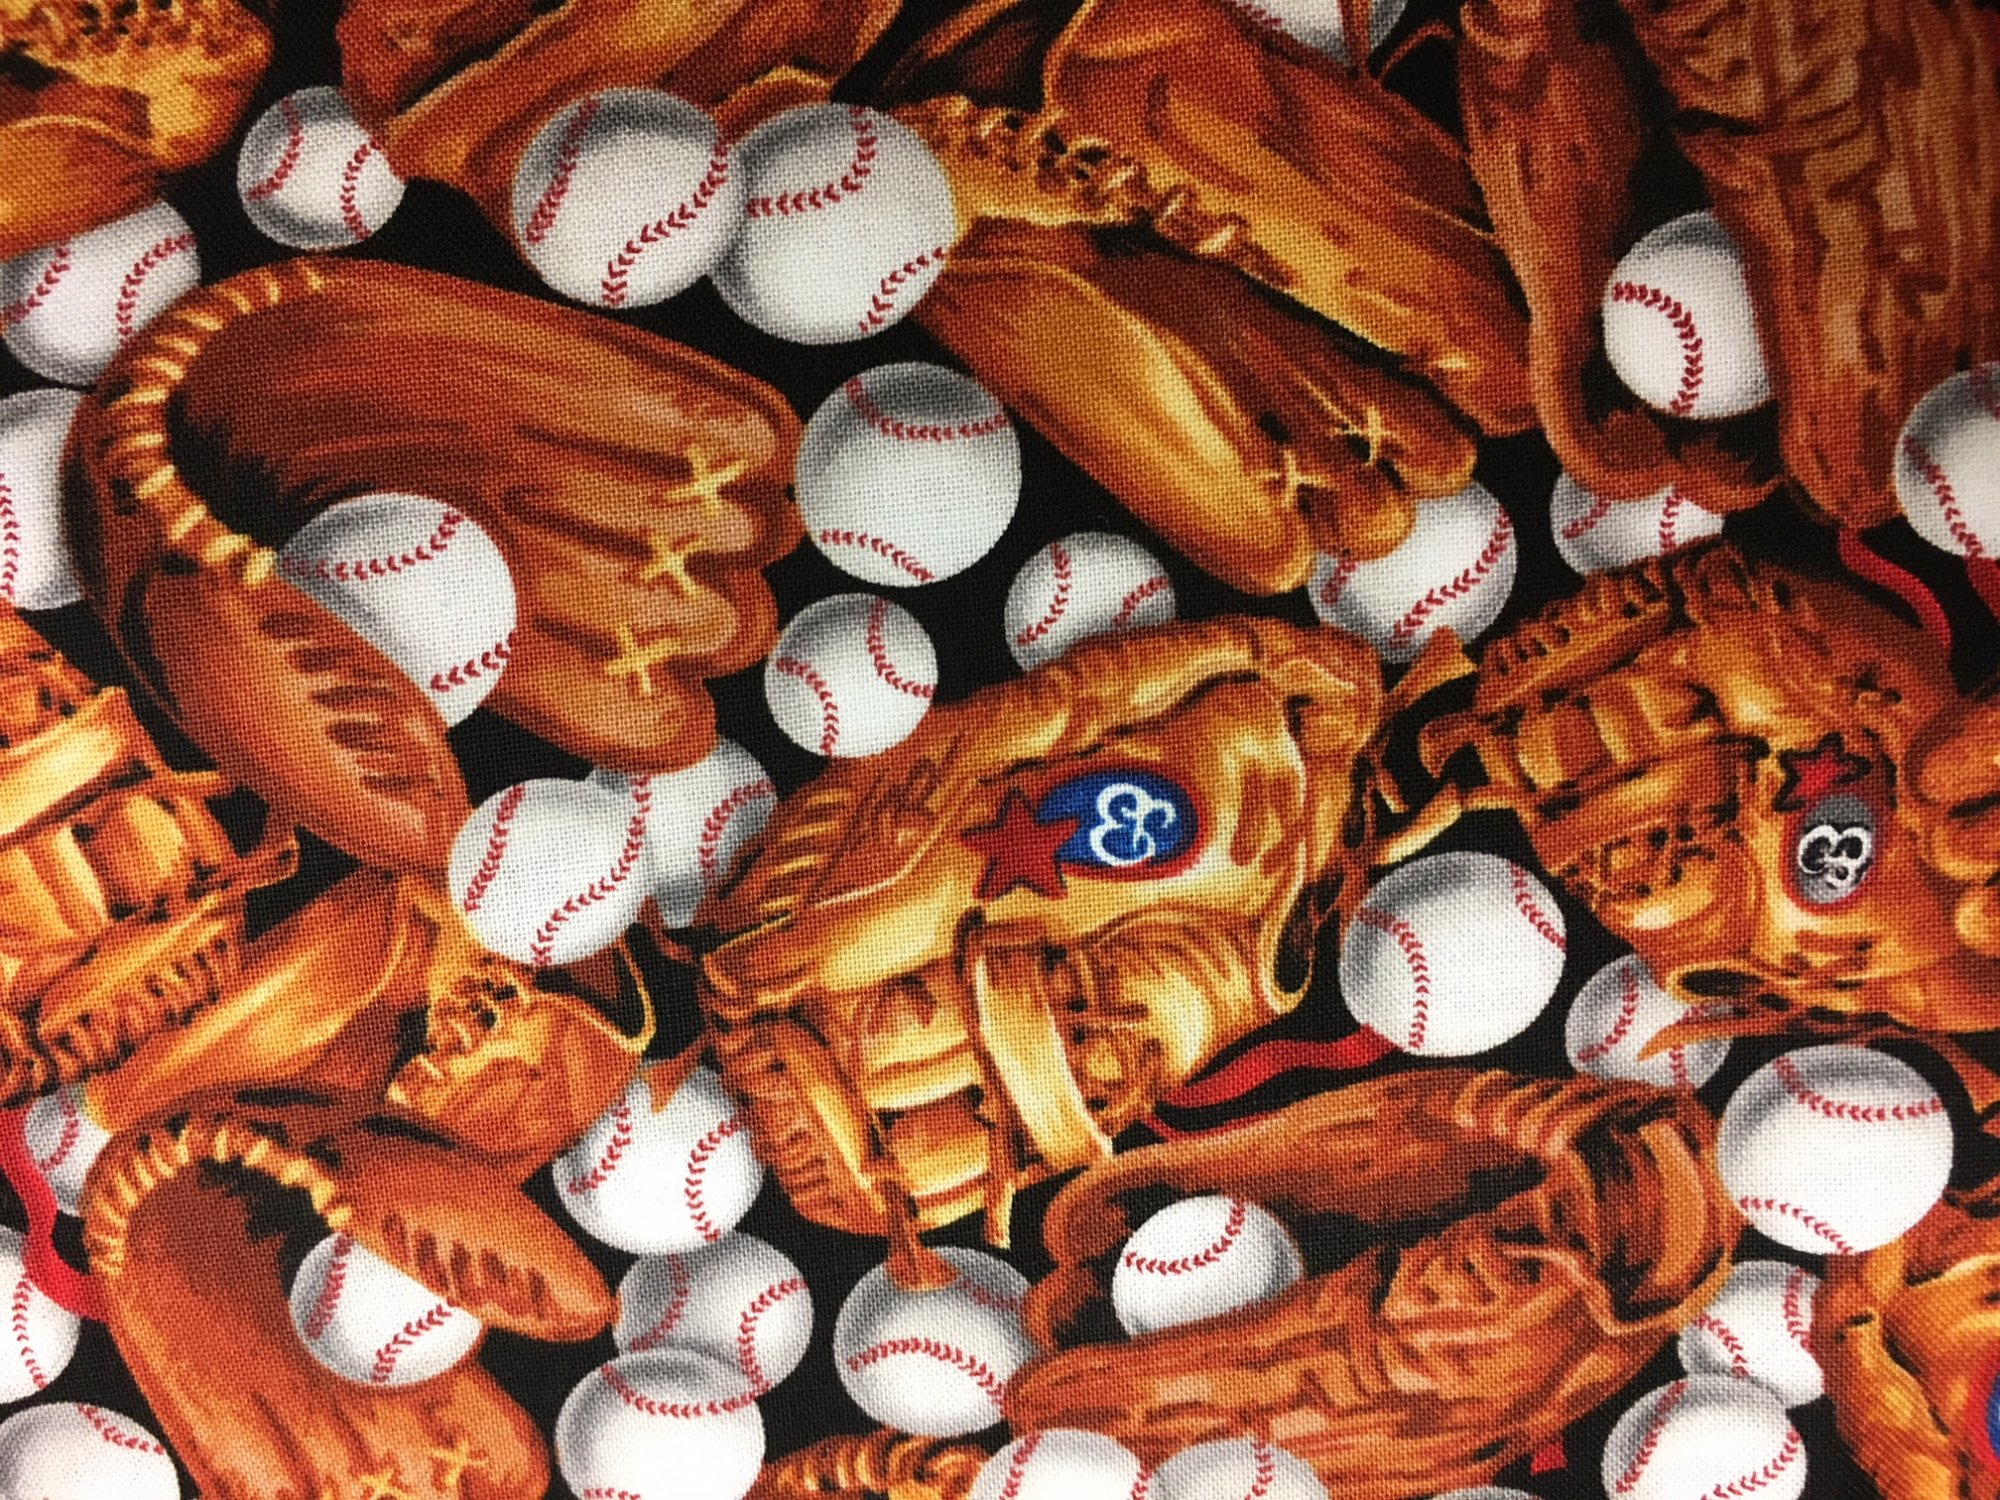 Sporting Baseballs & Gloves